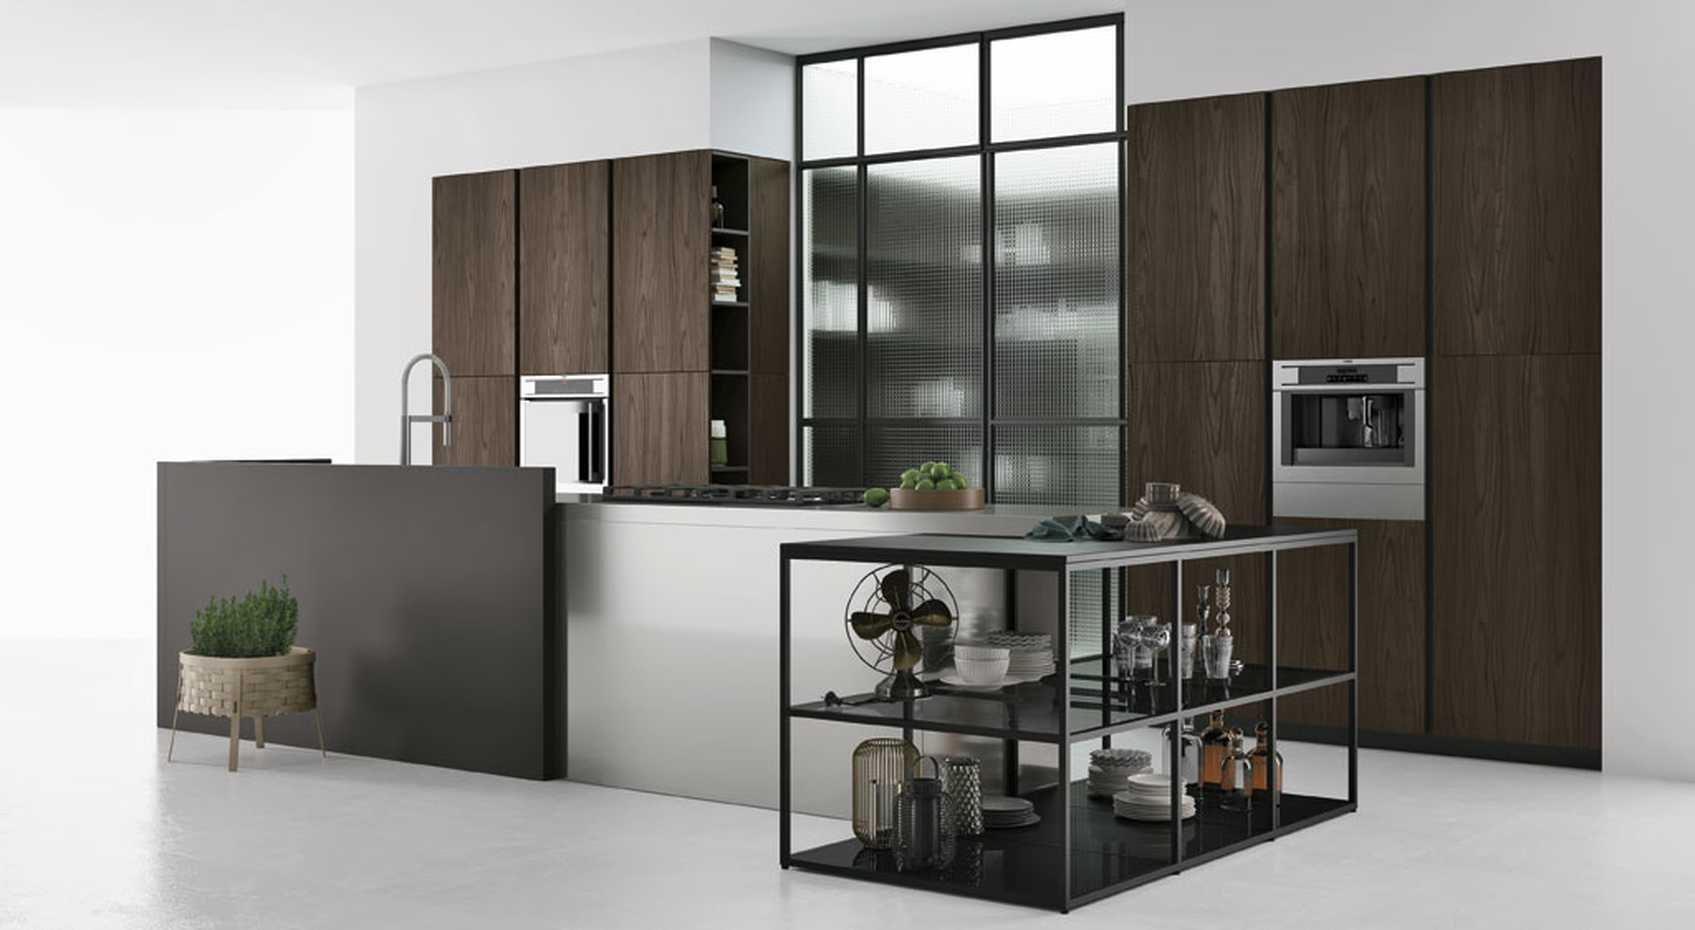 Style by Doimo Cucine product image 12